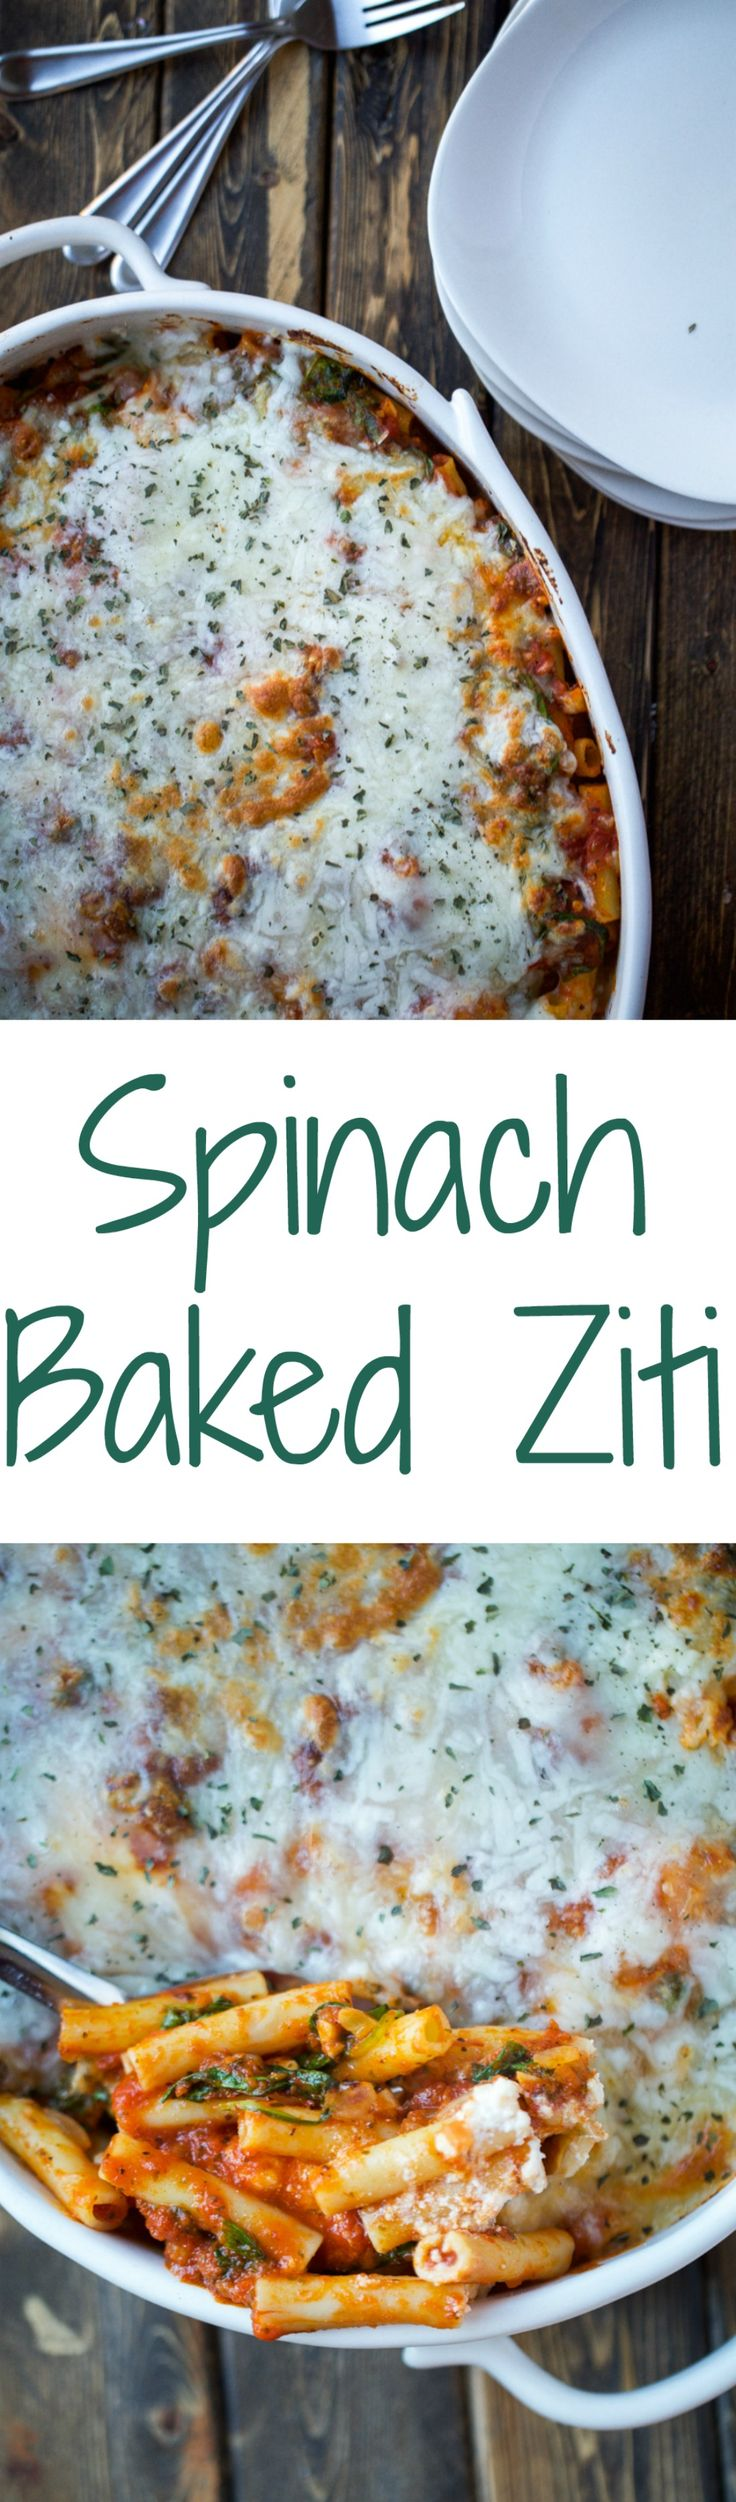 A classic comfort food that is baked with spinach, ziti noodles, pasta sauce, and so many cheeses. It's easy to make and perfect for a crowd.